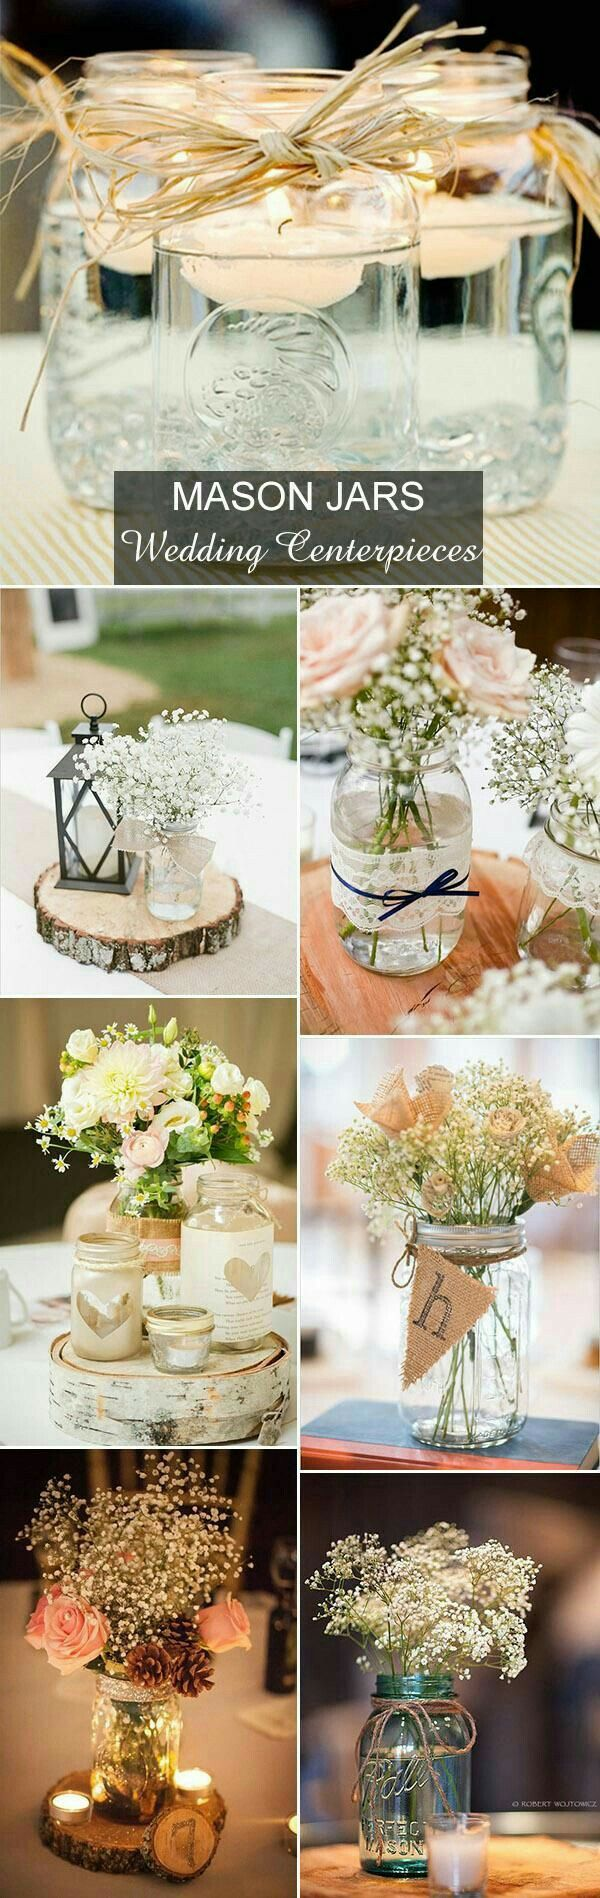 Simple, simple, simple! Mason jars (no twine) with baby's breath inside.  We can arrange these flowers 3 days ahead of time and they'll still look full and fresh! I also have mason jar votives that we can put fake candles in.  And I may be able to get floating lights!  I also may be able to borrow mirrors for underneath.  Megan Smith, we could use your twinkle lights on the table, as well!